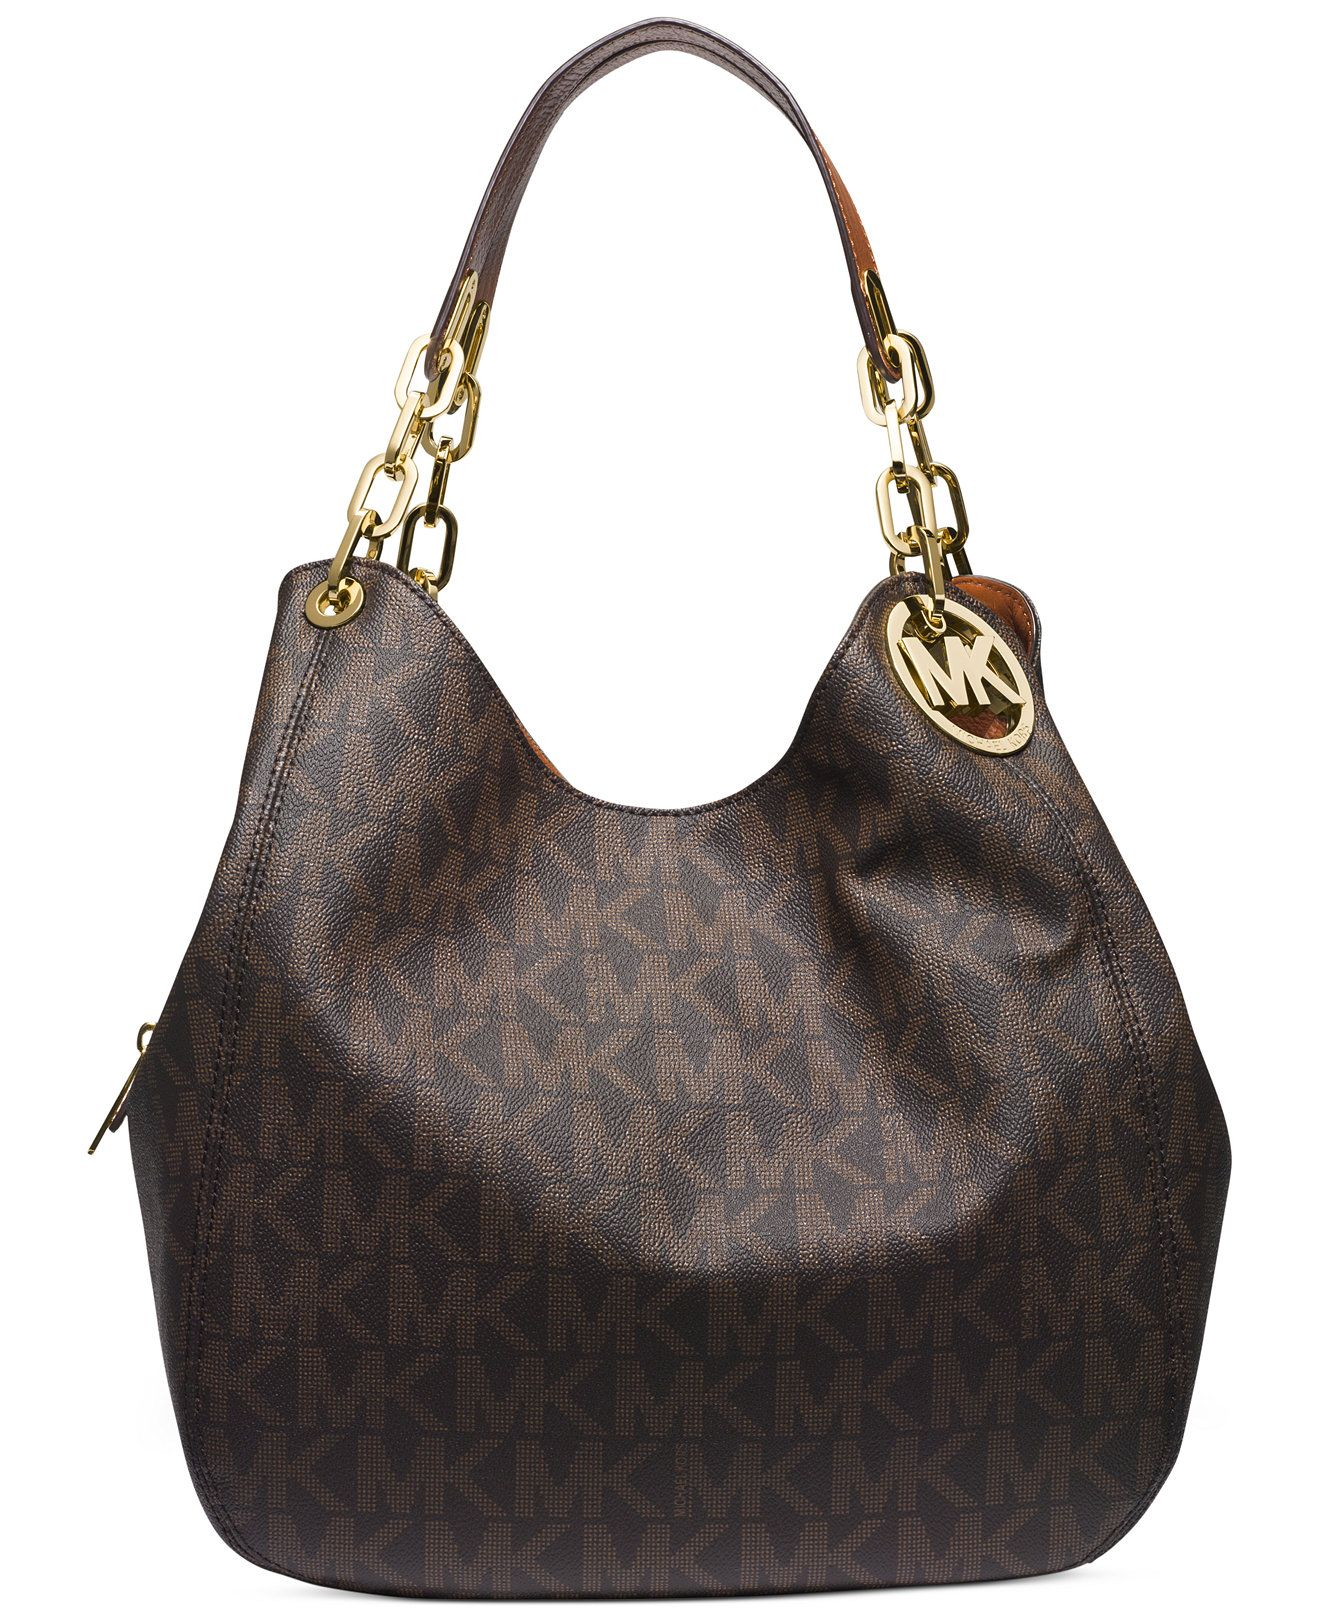 55e08aa2d842 MICHAEL Michael Kors Fulton Large Shoulder Tote - Michael Kors Handbags -  Handbags   Accessories - Macy s